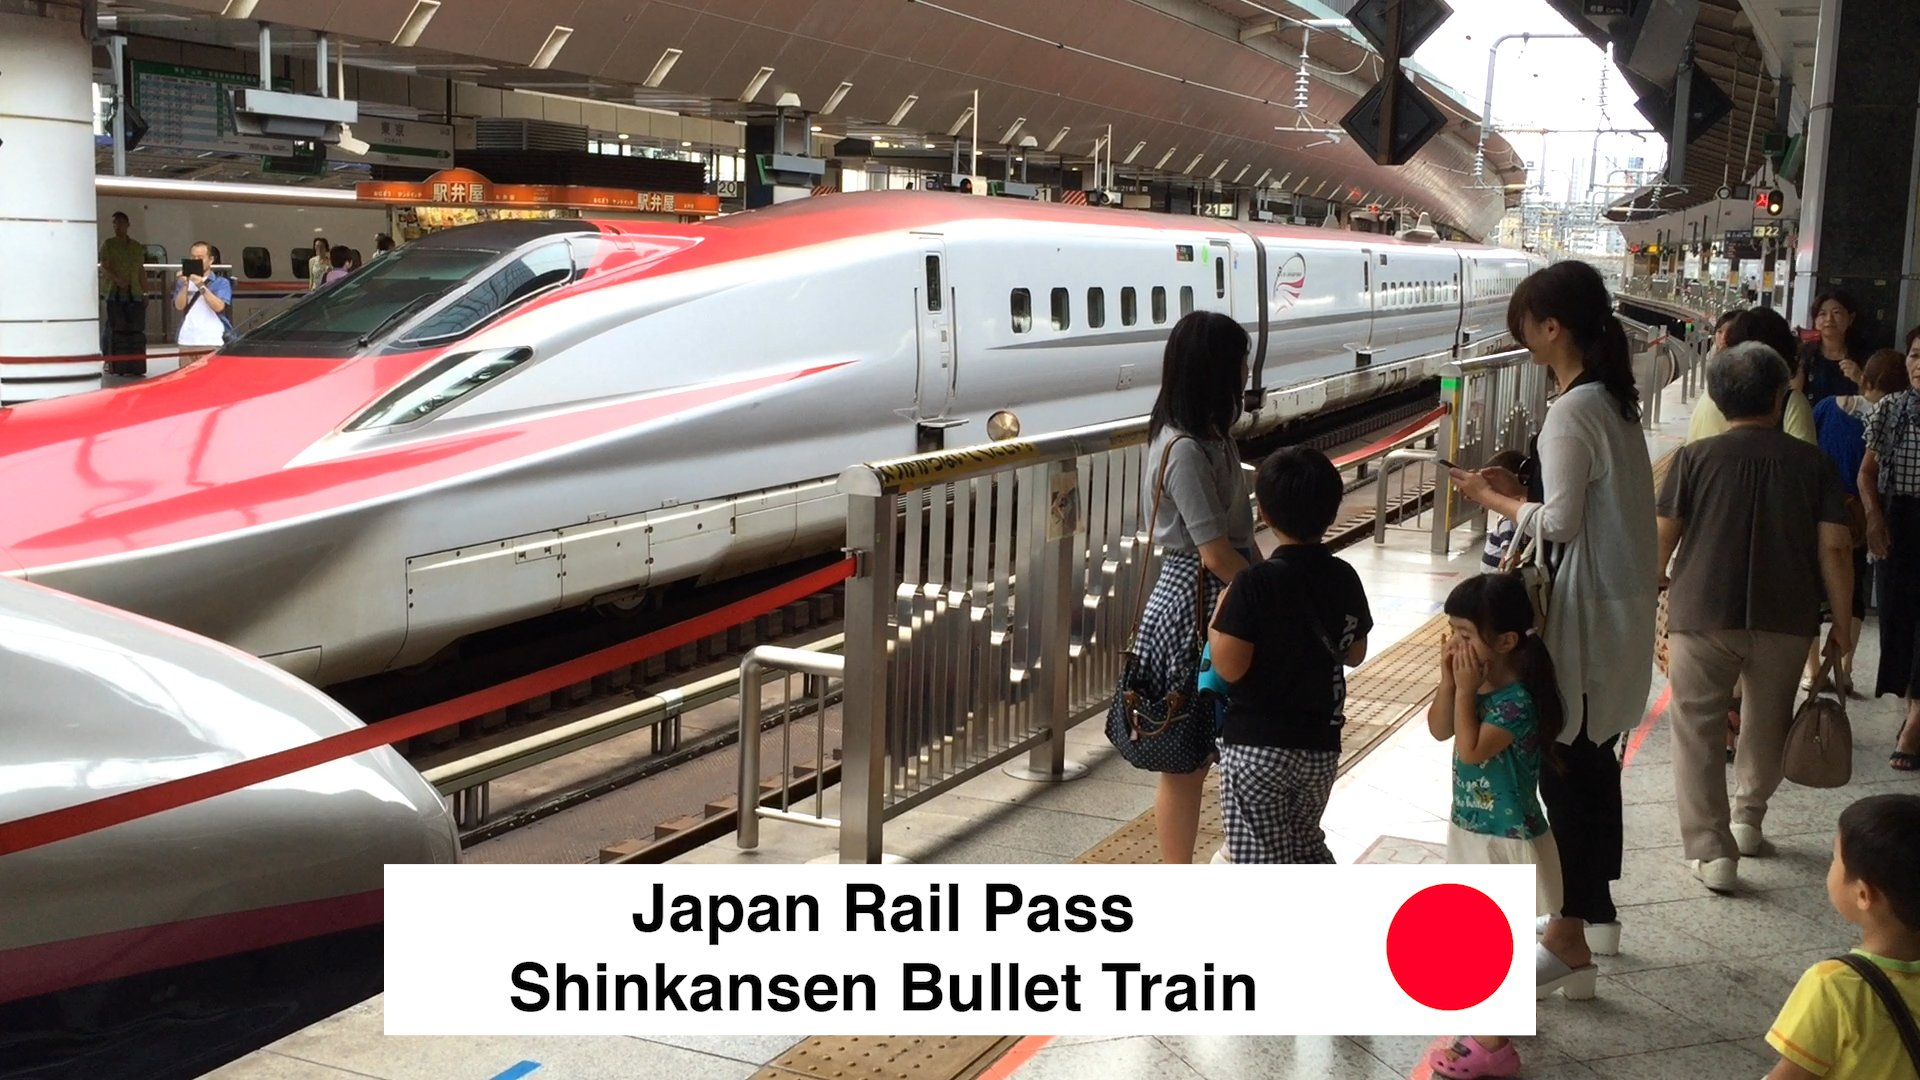 Japan Rail Bullet Train - Where To Buy Japan Rail Pass How To Use JR Pass In Tokyo. JR Pass Price